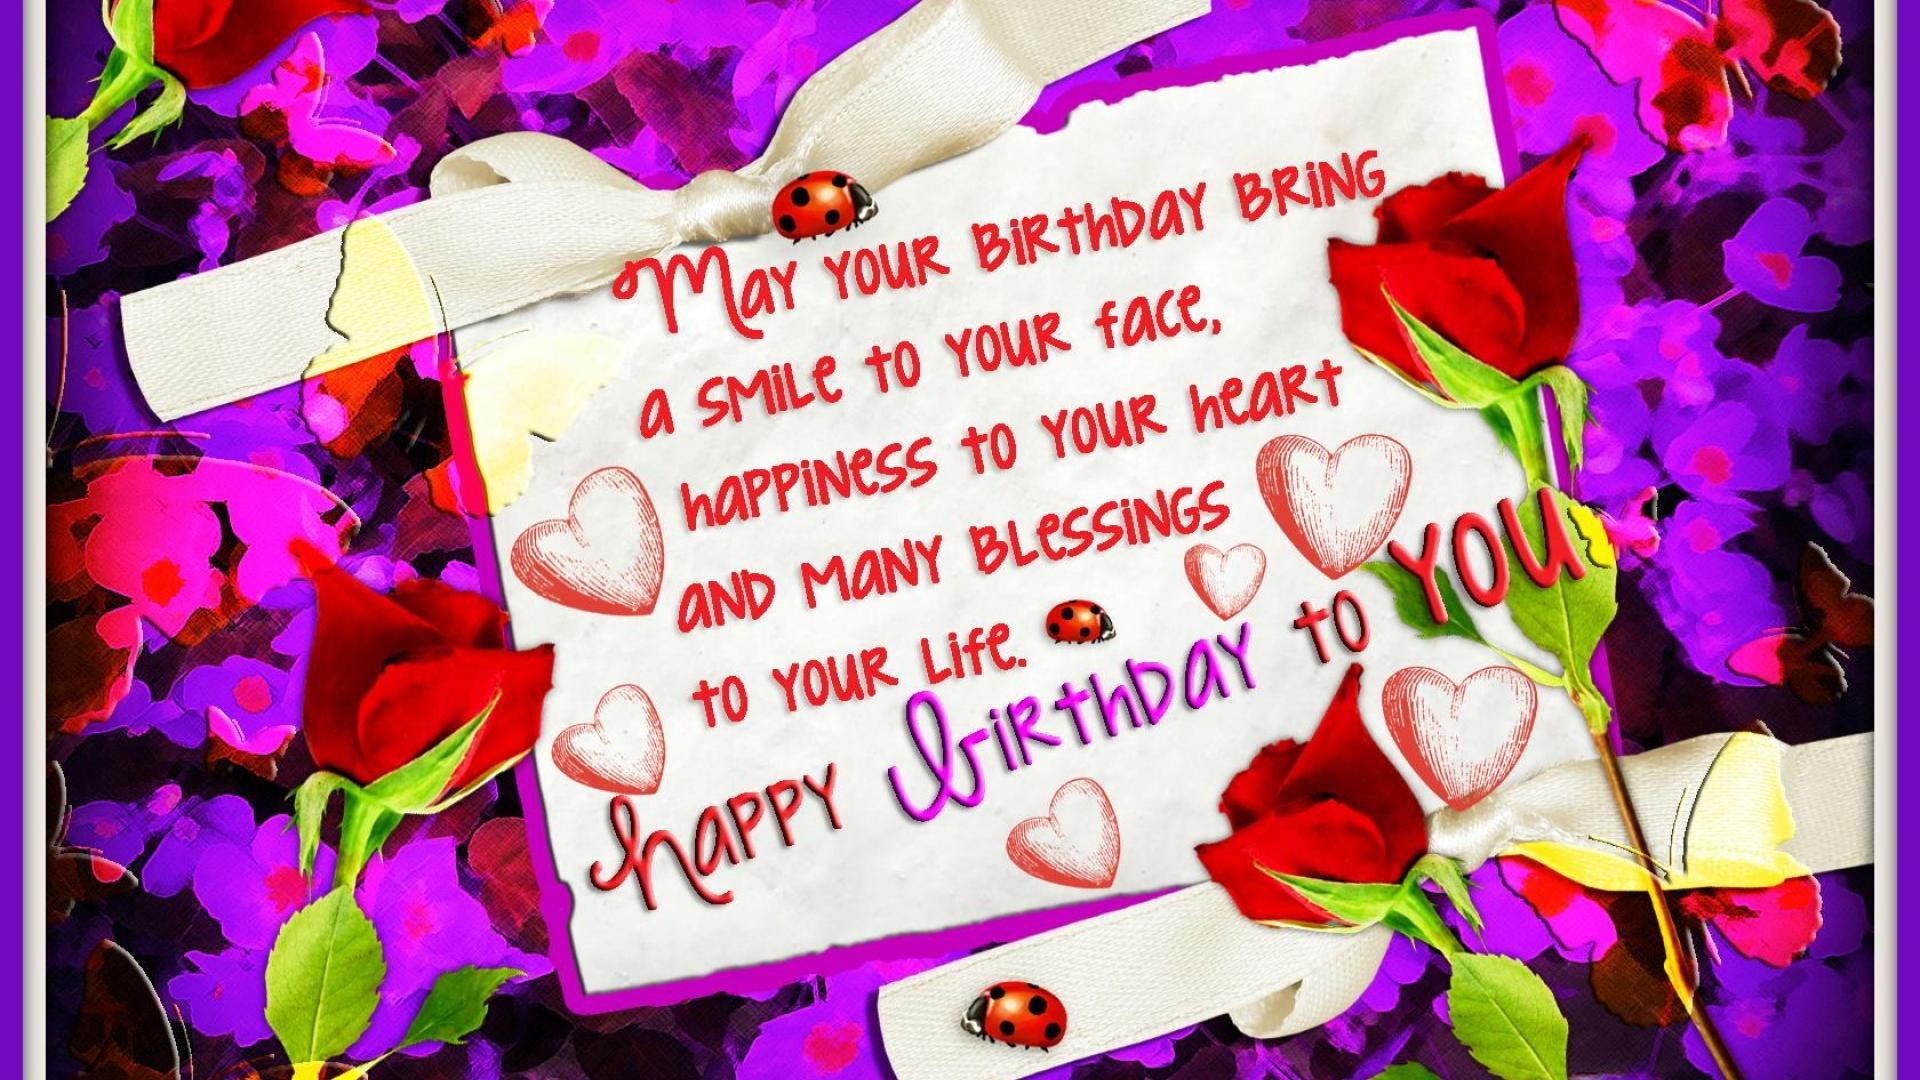 Happy birthday wallpapers with name 61 images - Happy birthday card wallpaper ...